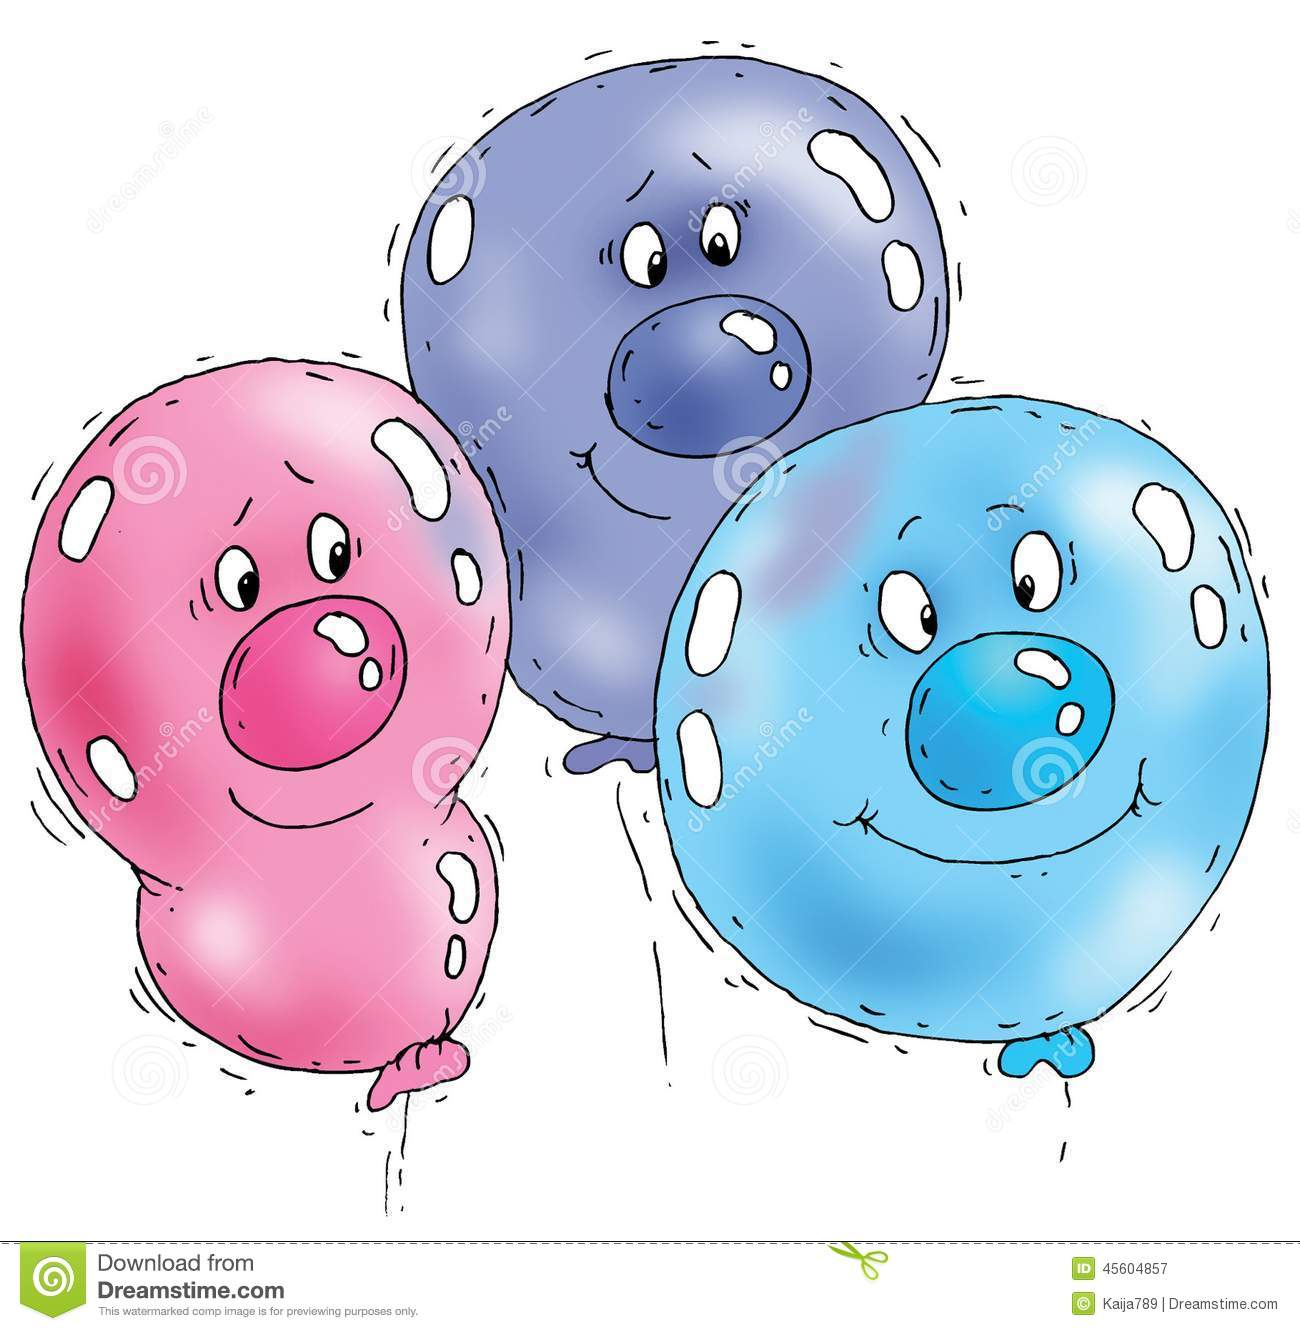 Funny balloon faces - Cartoon Balloon Faces Stock Illustration